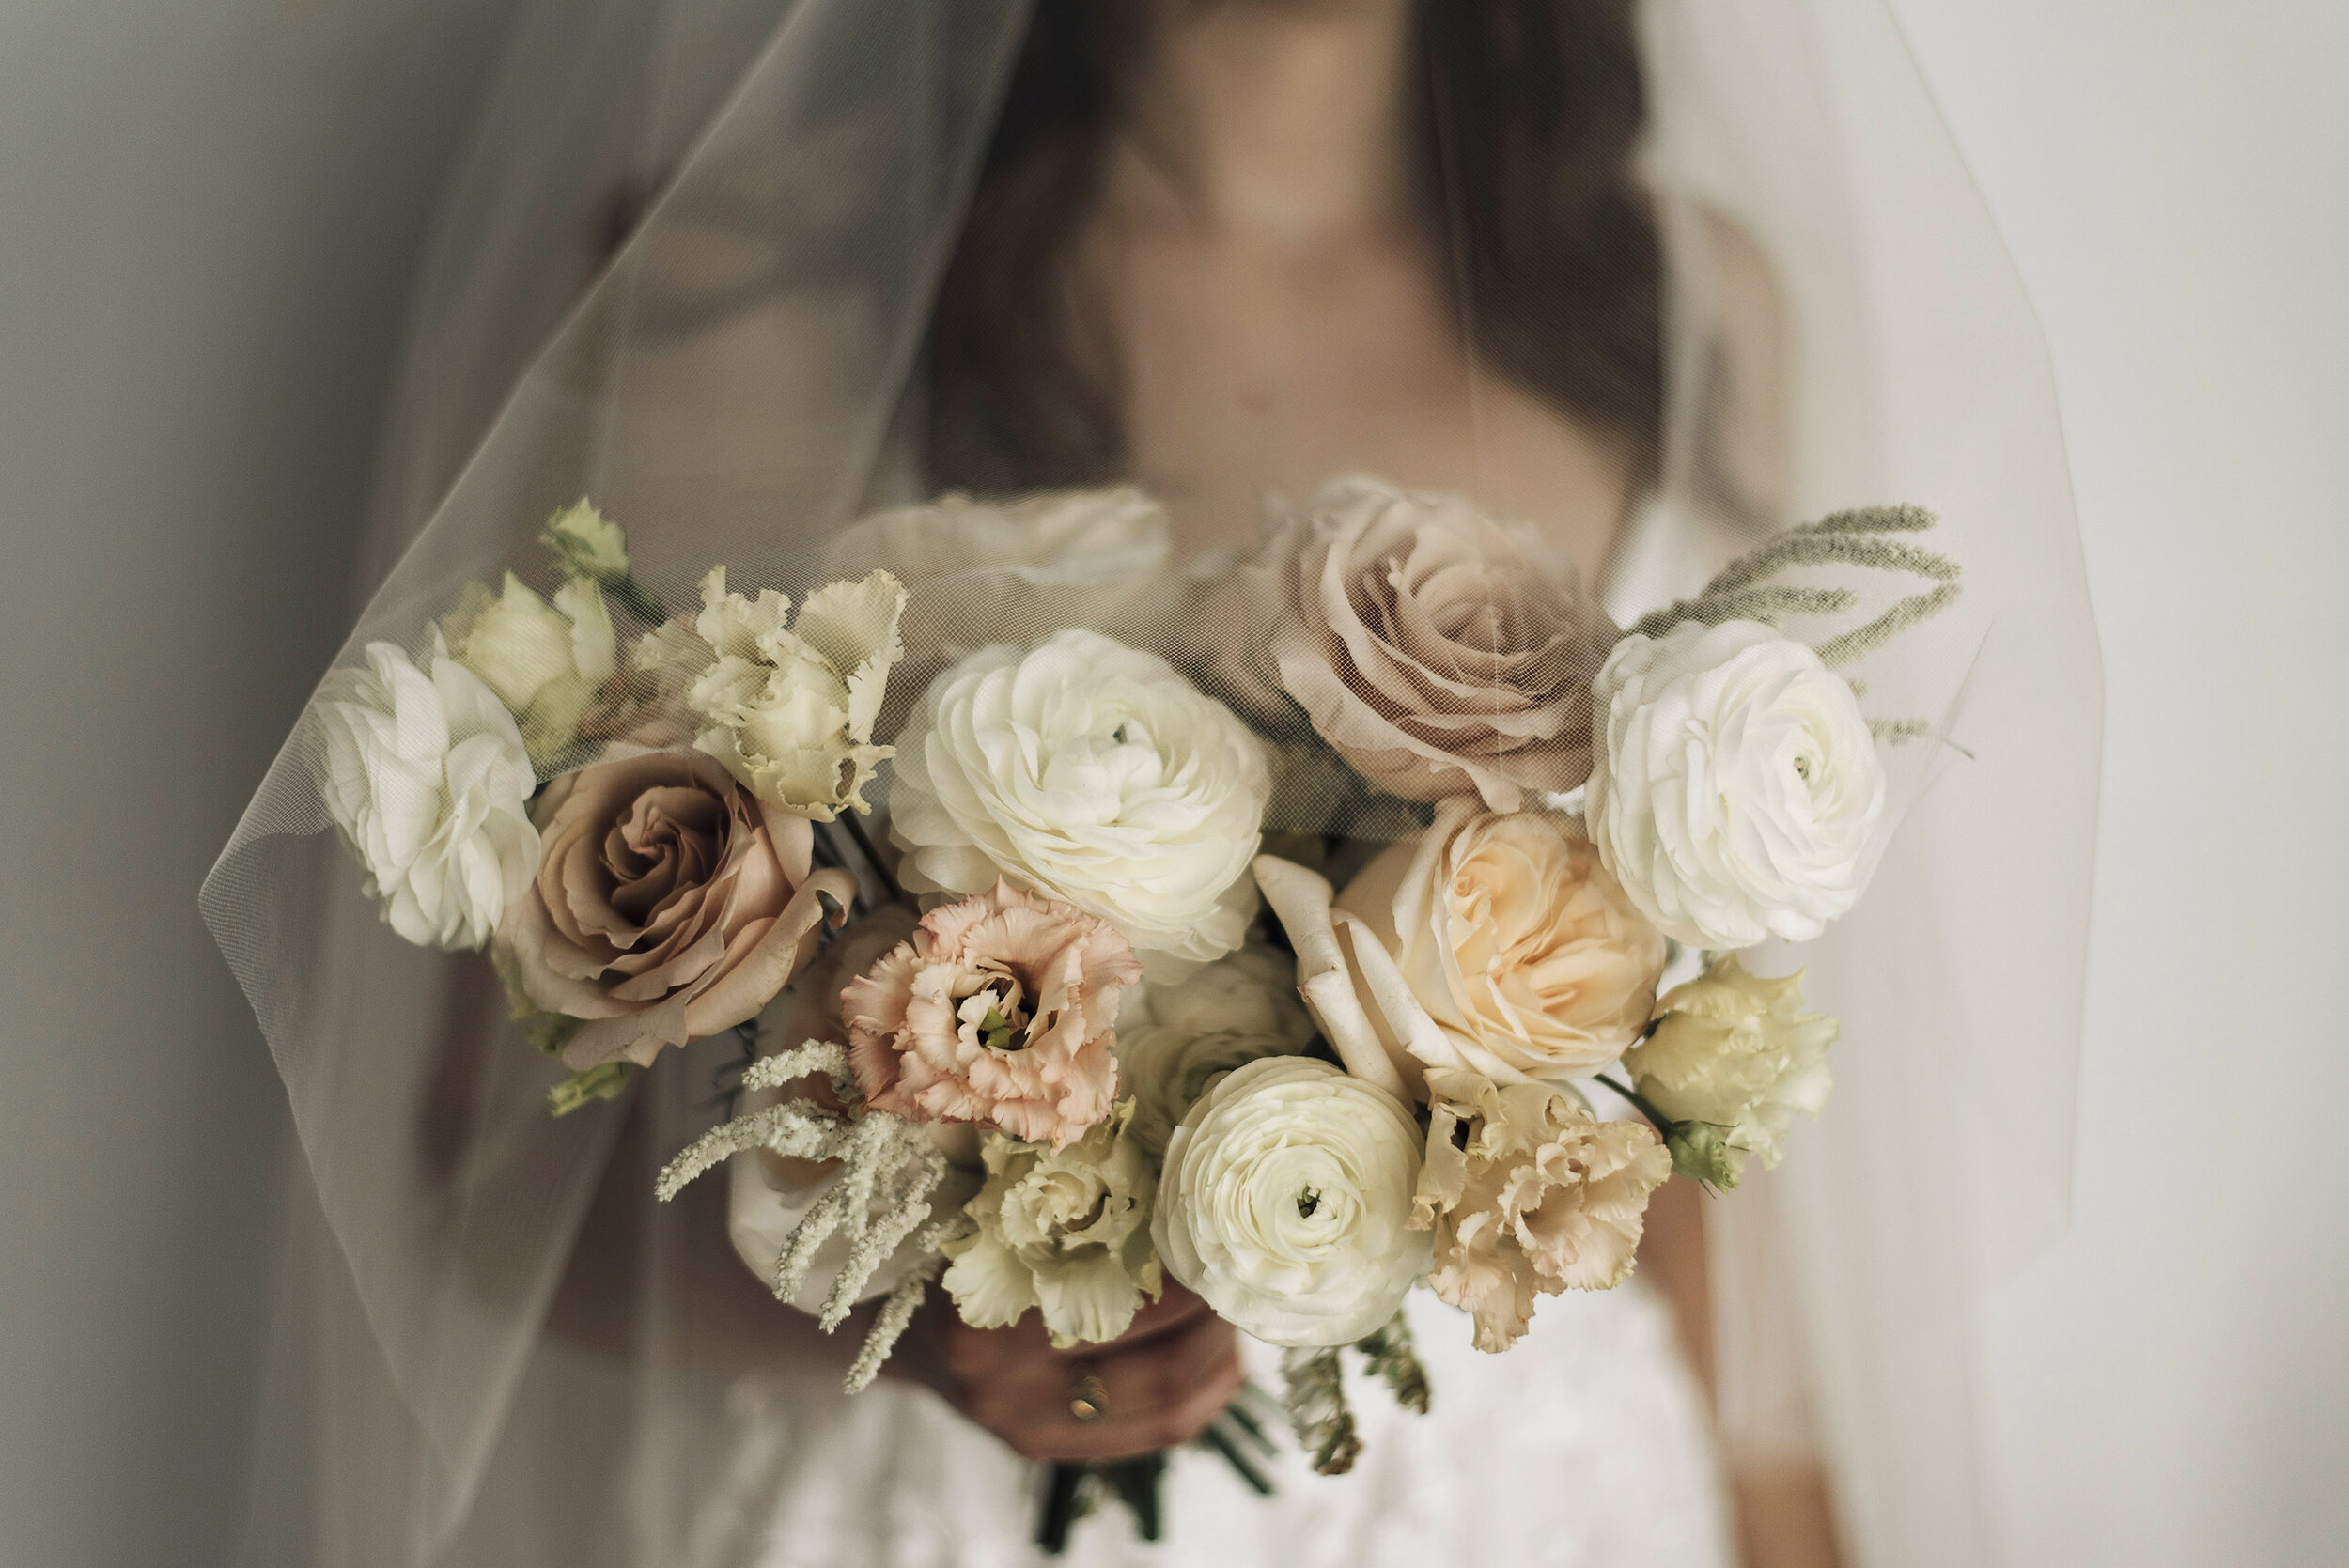 Bringing Back the Flower Crown: Organic & Ethereal Bridal Inspiration Shoot